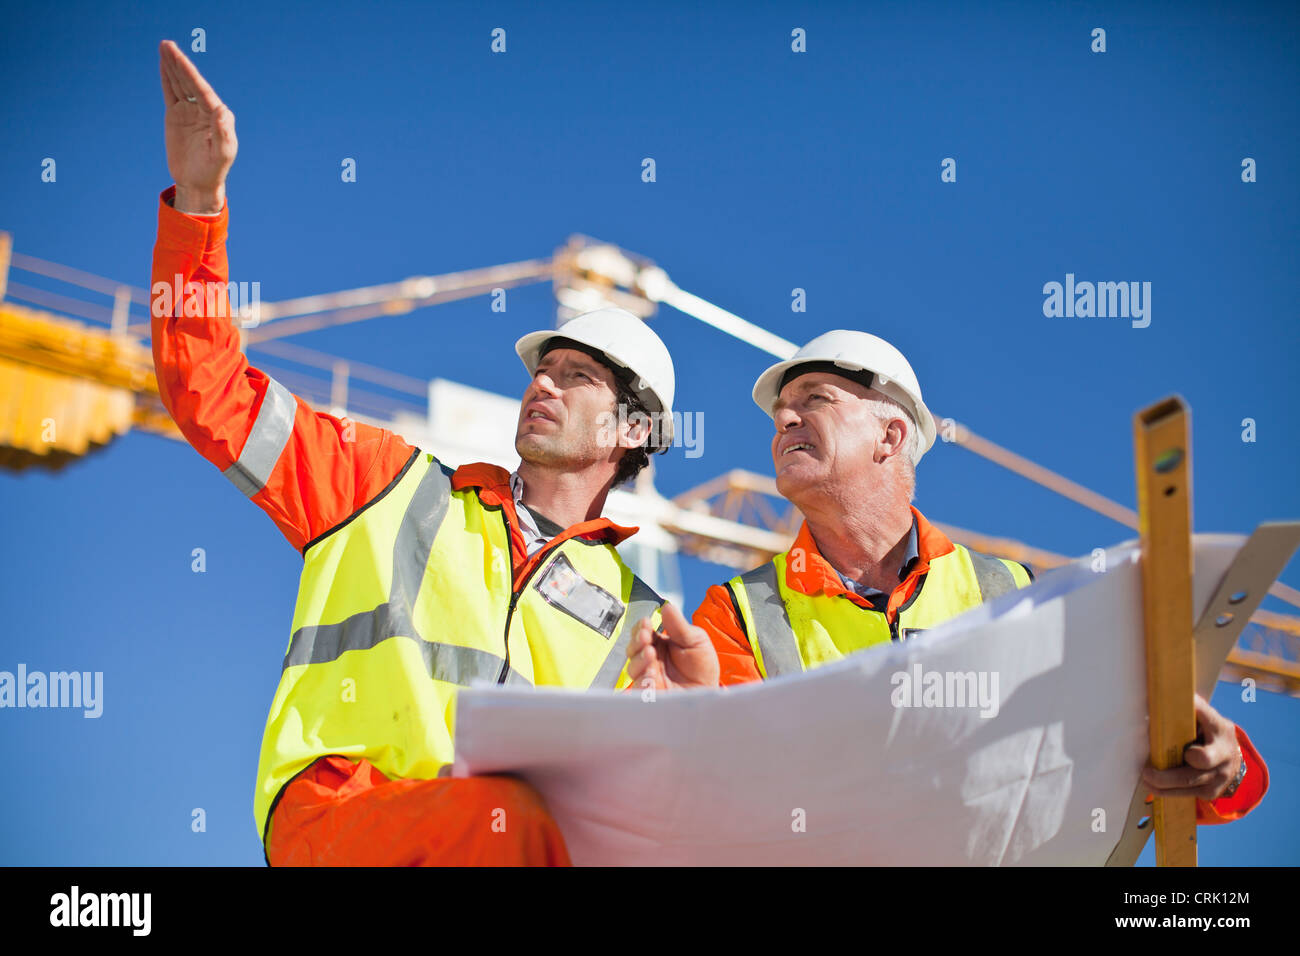 Workers reading blueprints on site - Stock Image